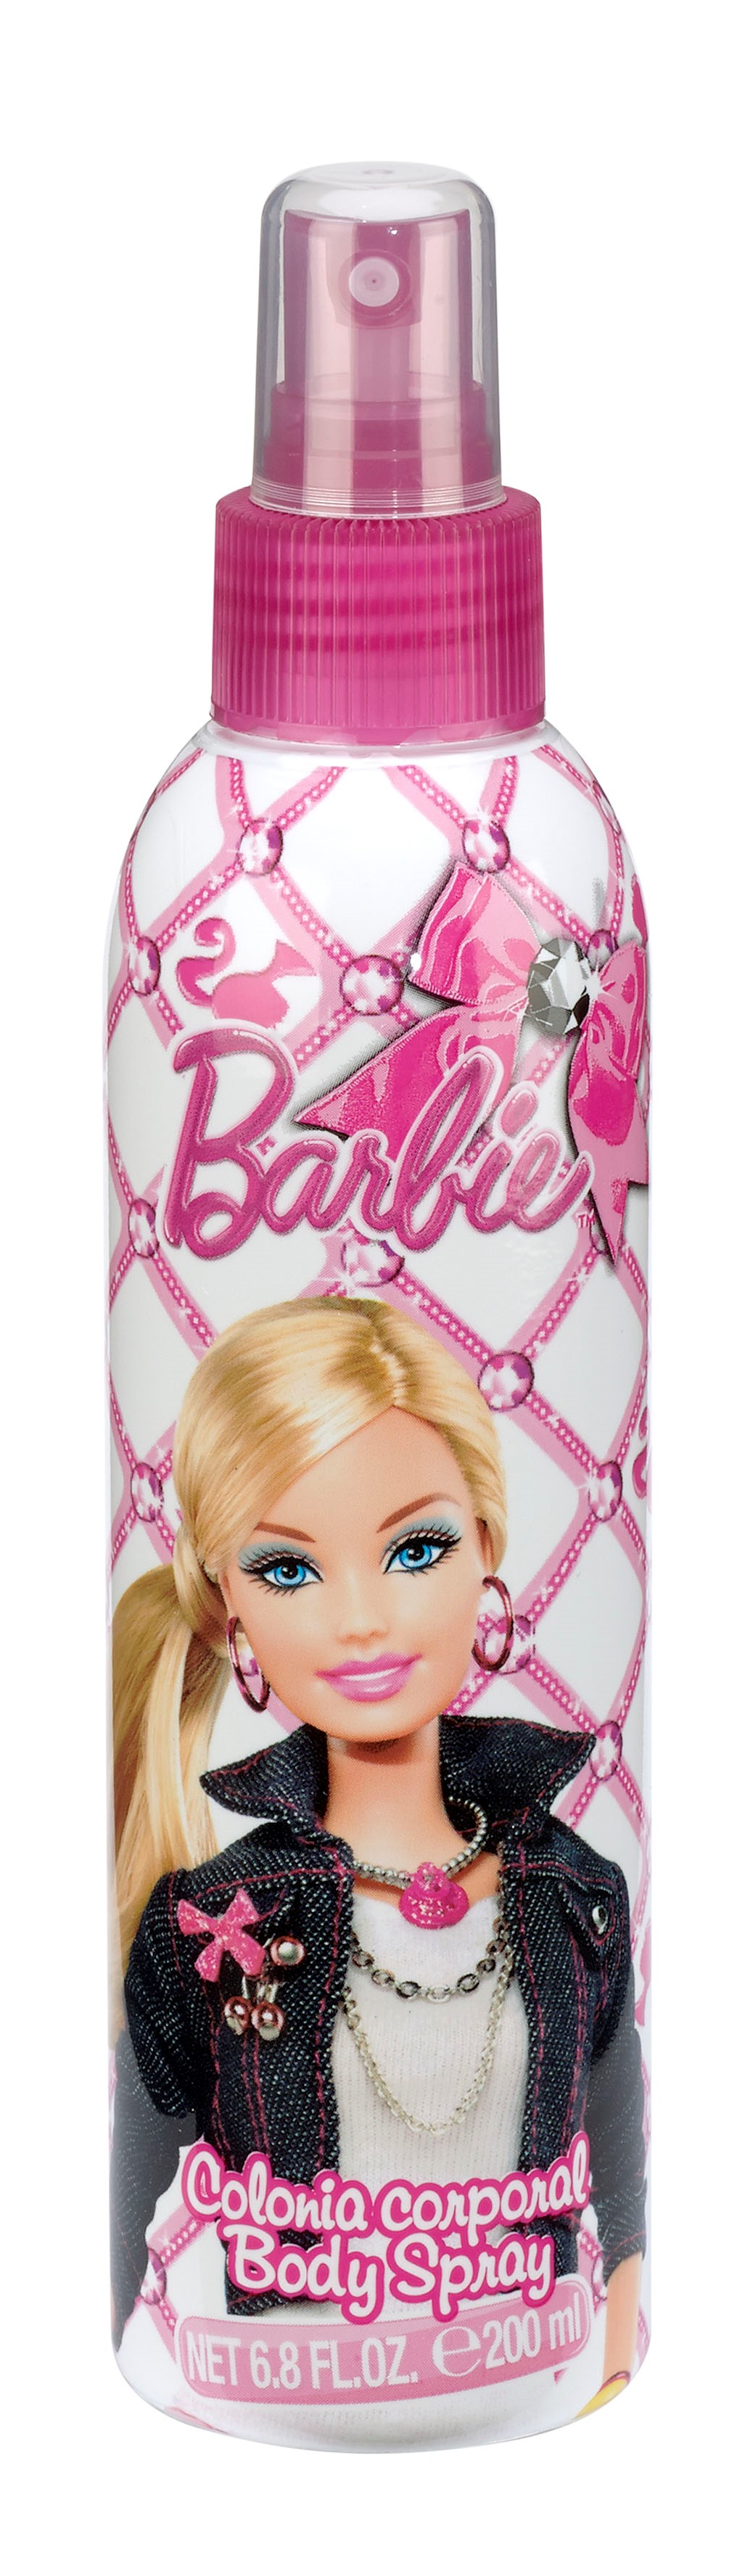 Mattel Barbie Body Spray, 6.8 Fl Oz by Air-Val International SA